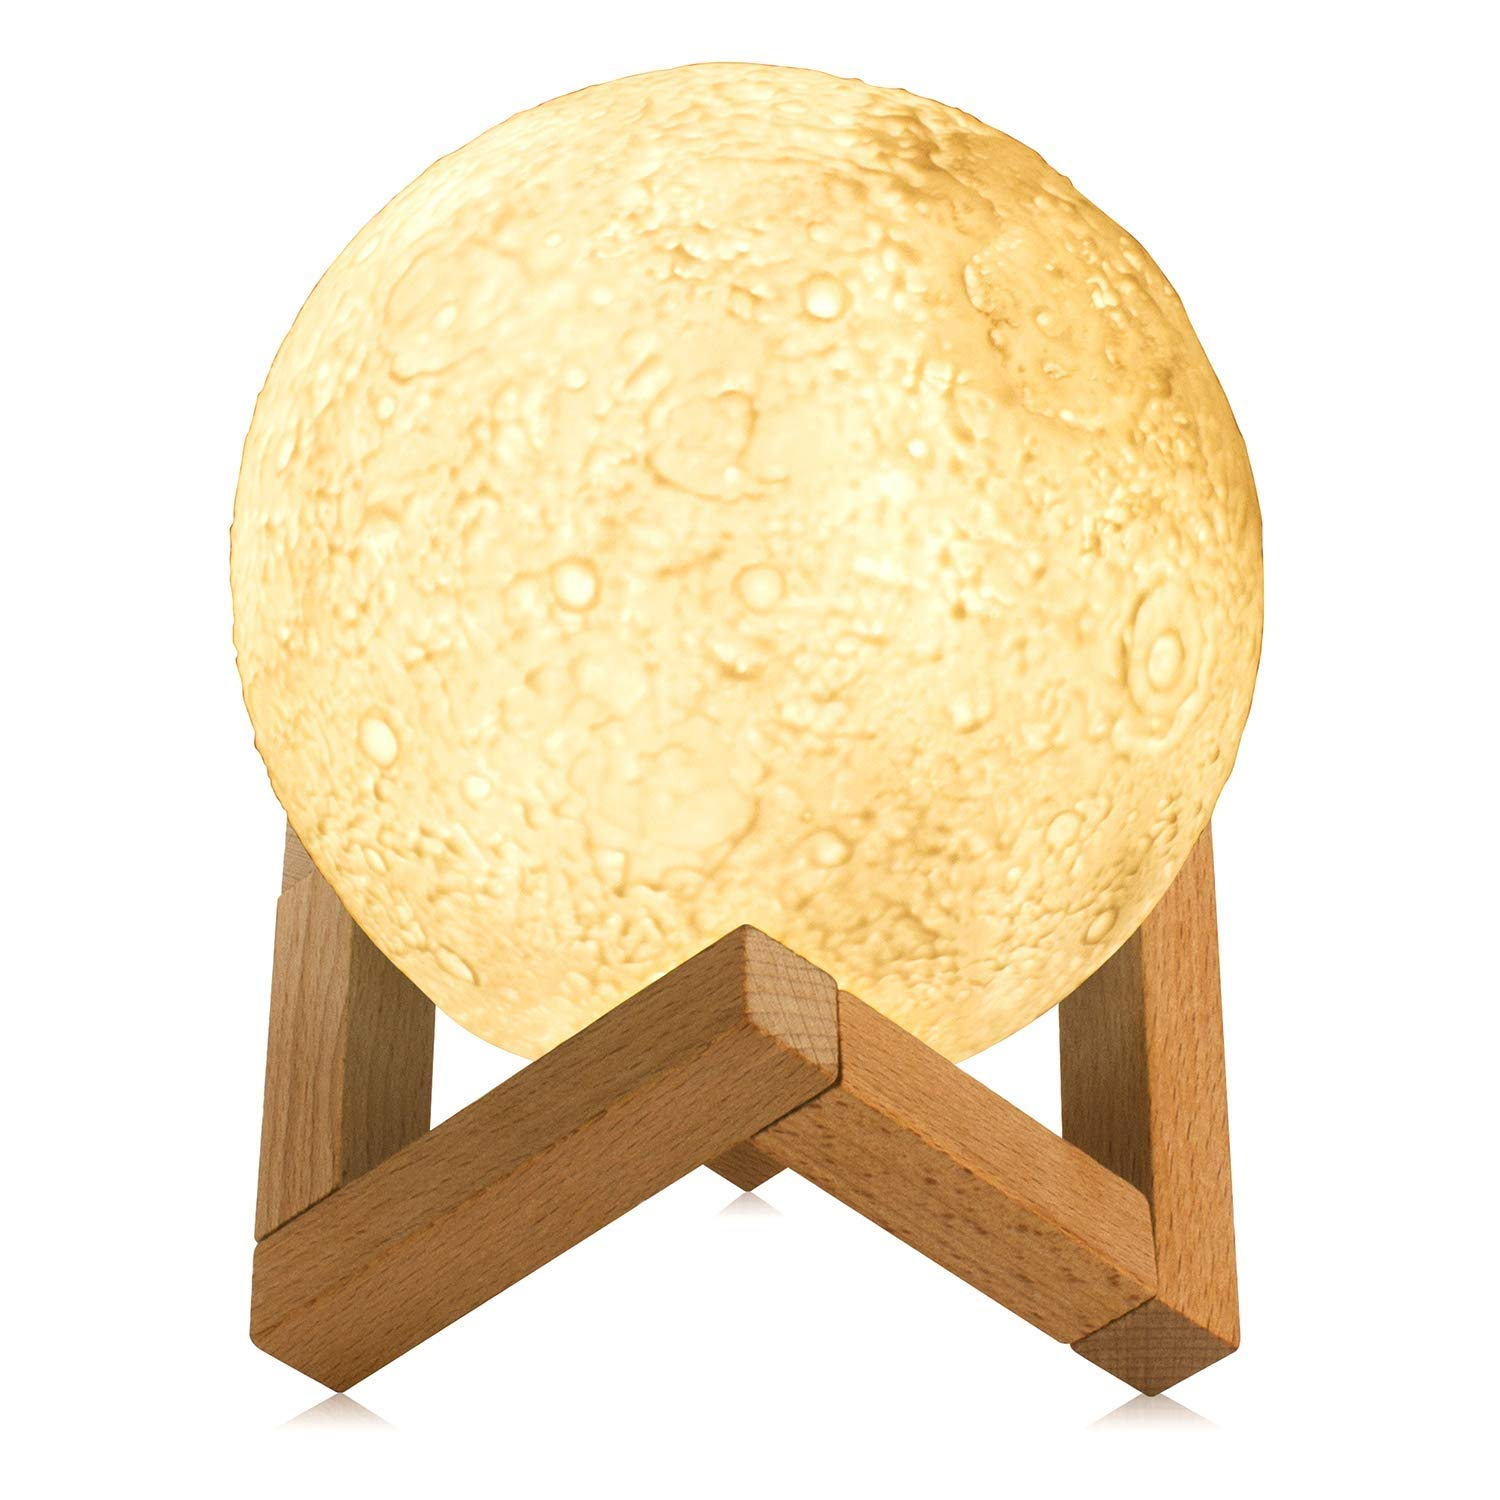 GYYlucky 3D Moon Lamp Light, Mood LED Touch Night Light with Wooden Stand, USB Charging Bedside Table Lamp for Bedroom, Living Room, Home Decoration Gift (13 cm)